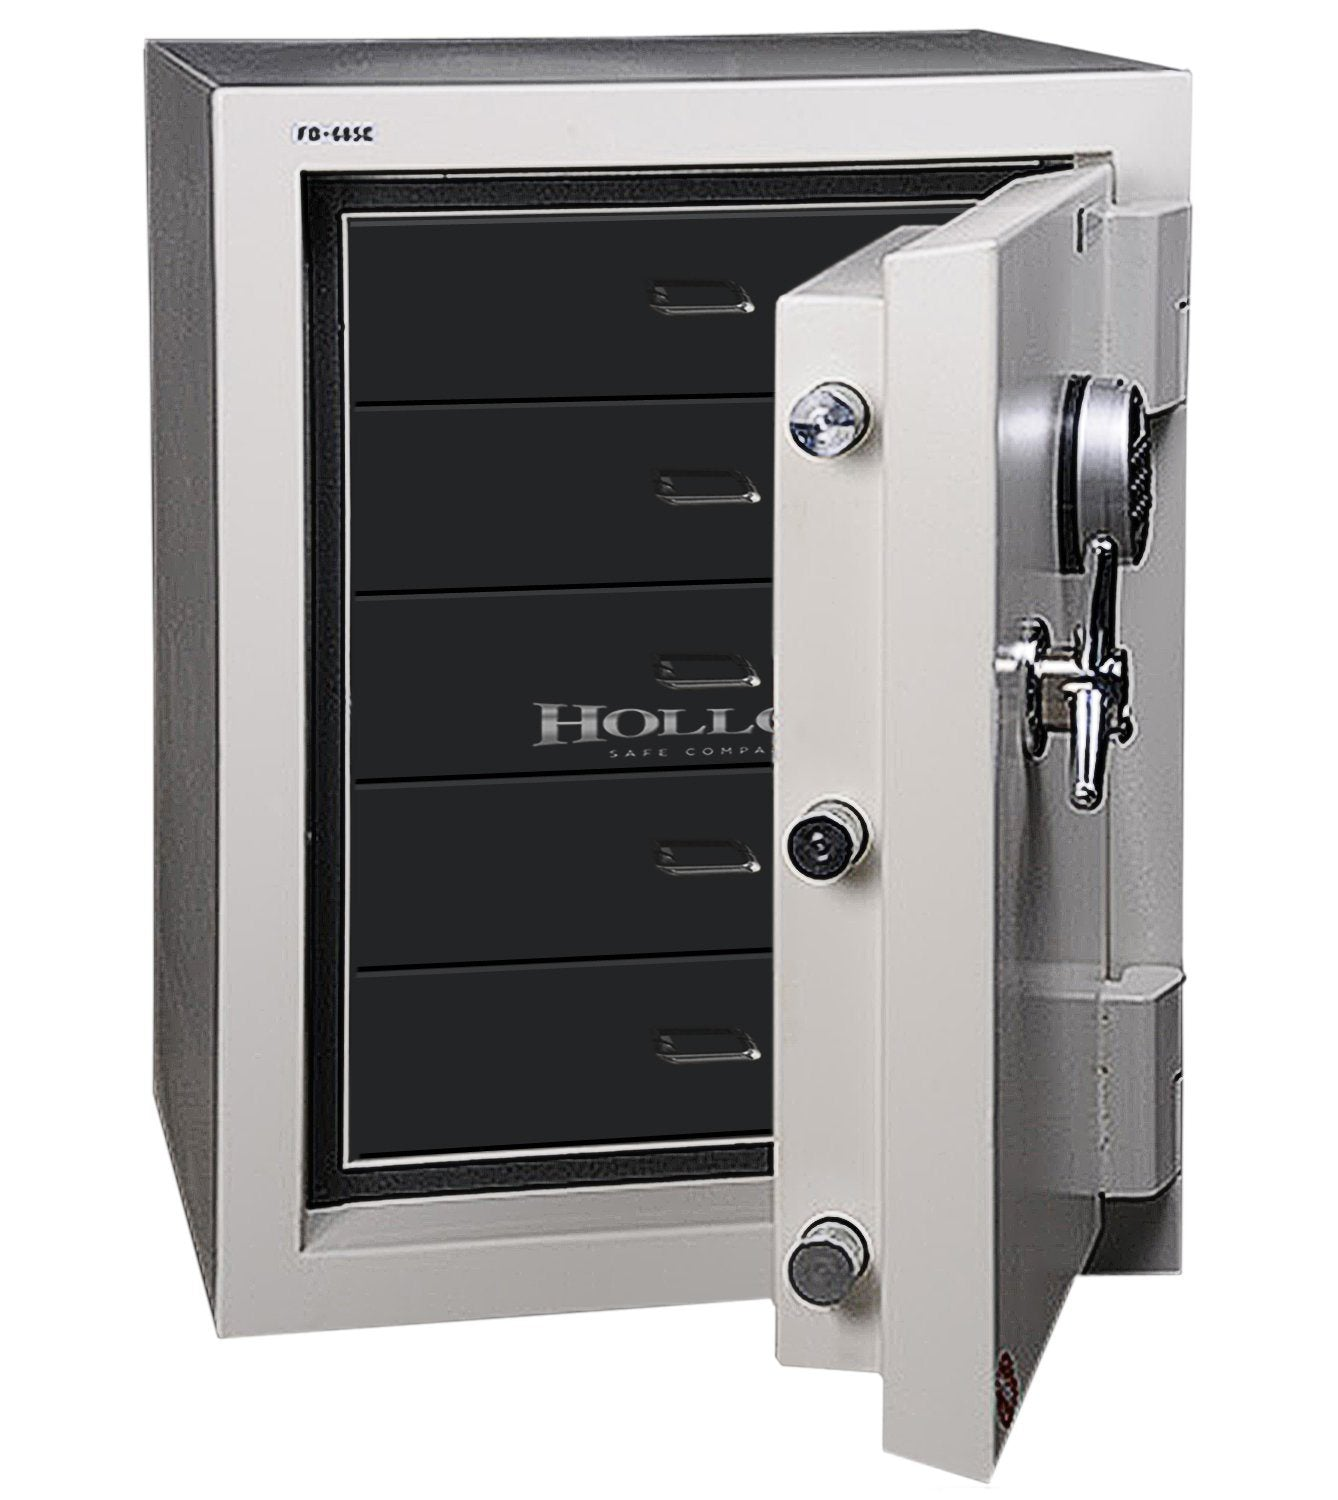 Burglar Fire Safe Products - Hollon 685C-JD Fire & Burglary Jewelry Safe With Combination Lock